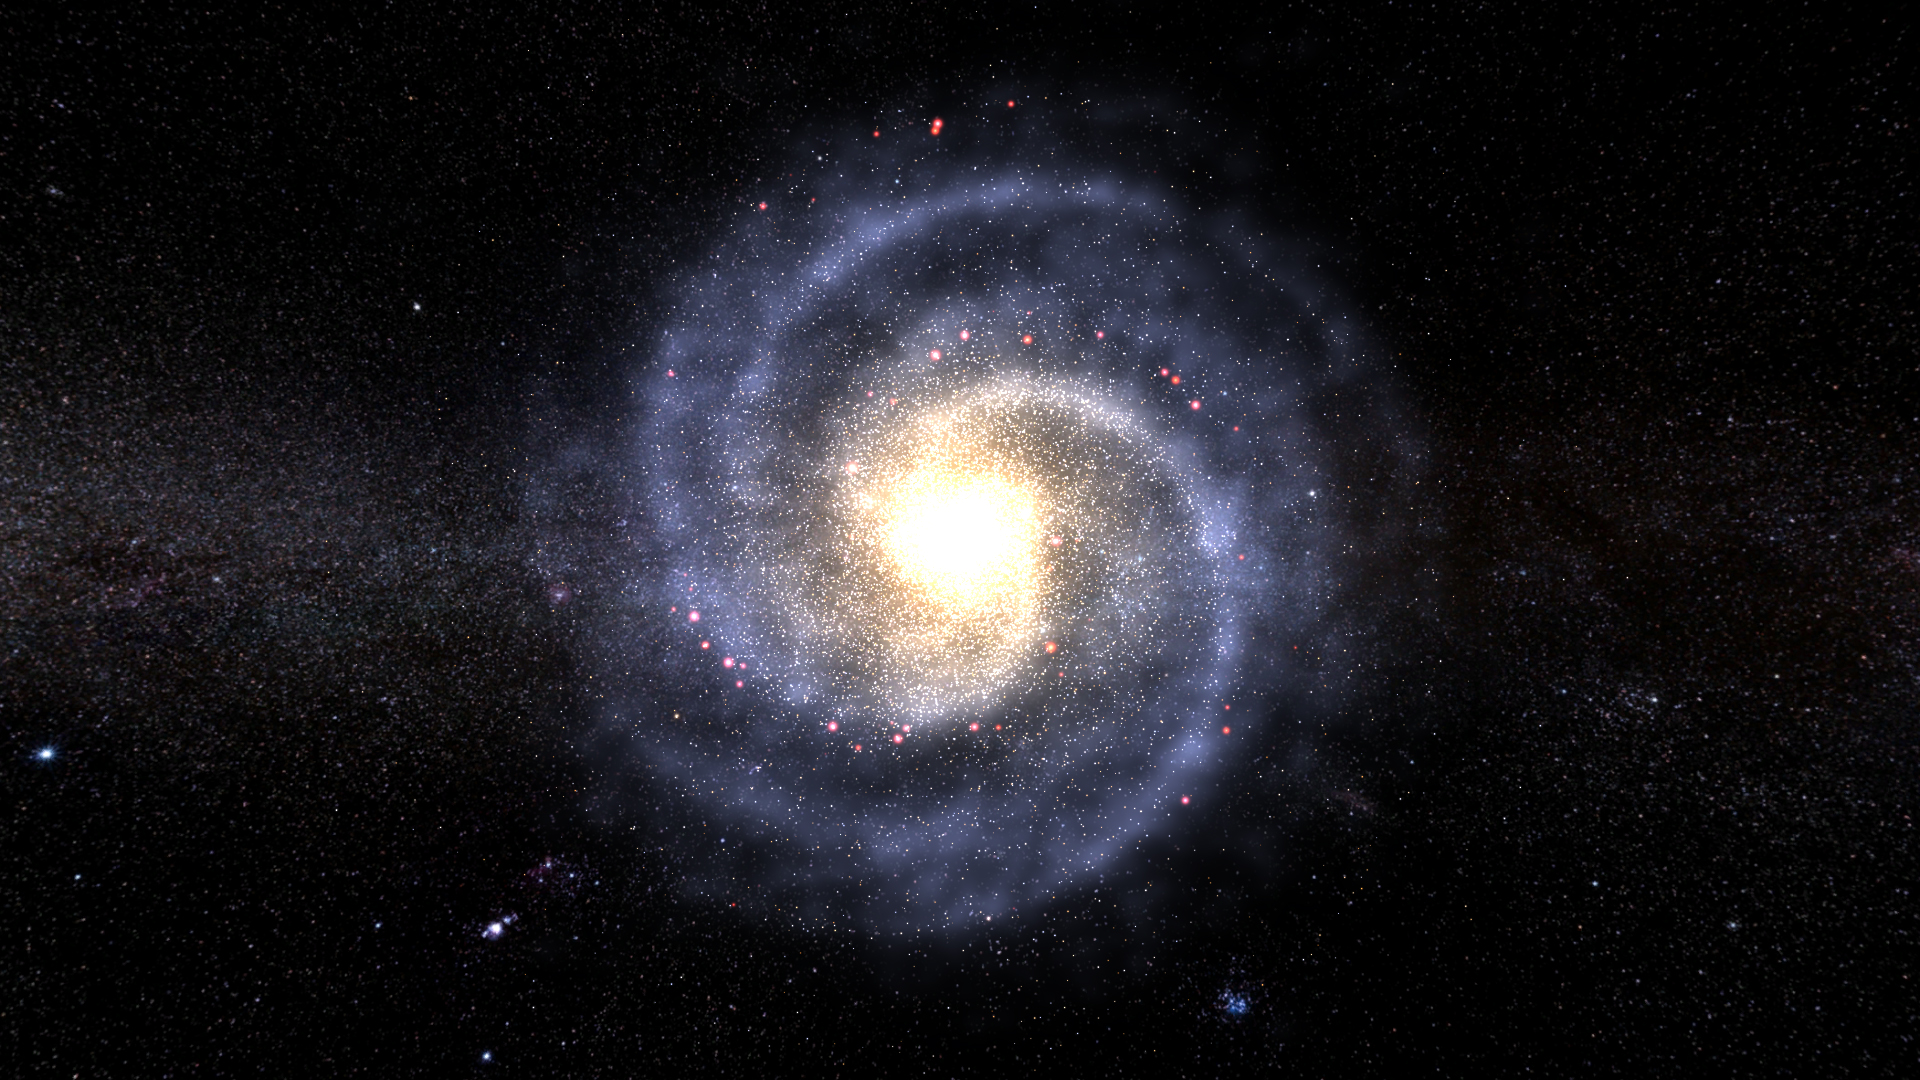 Rendering a Galaxy in Unity with the Density Wave Theory